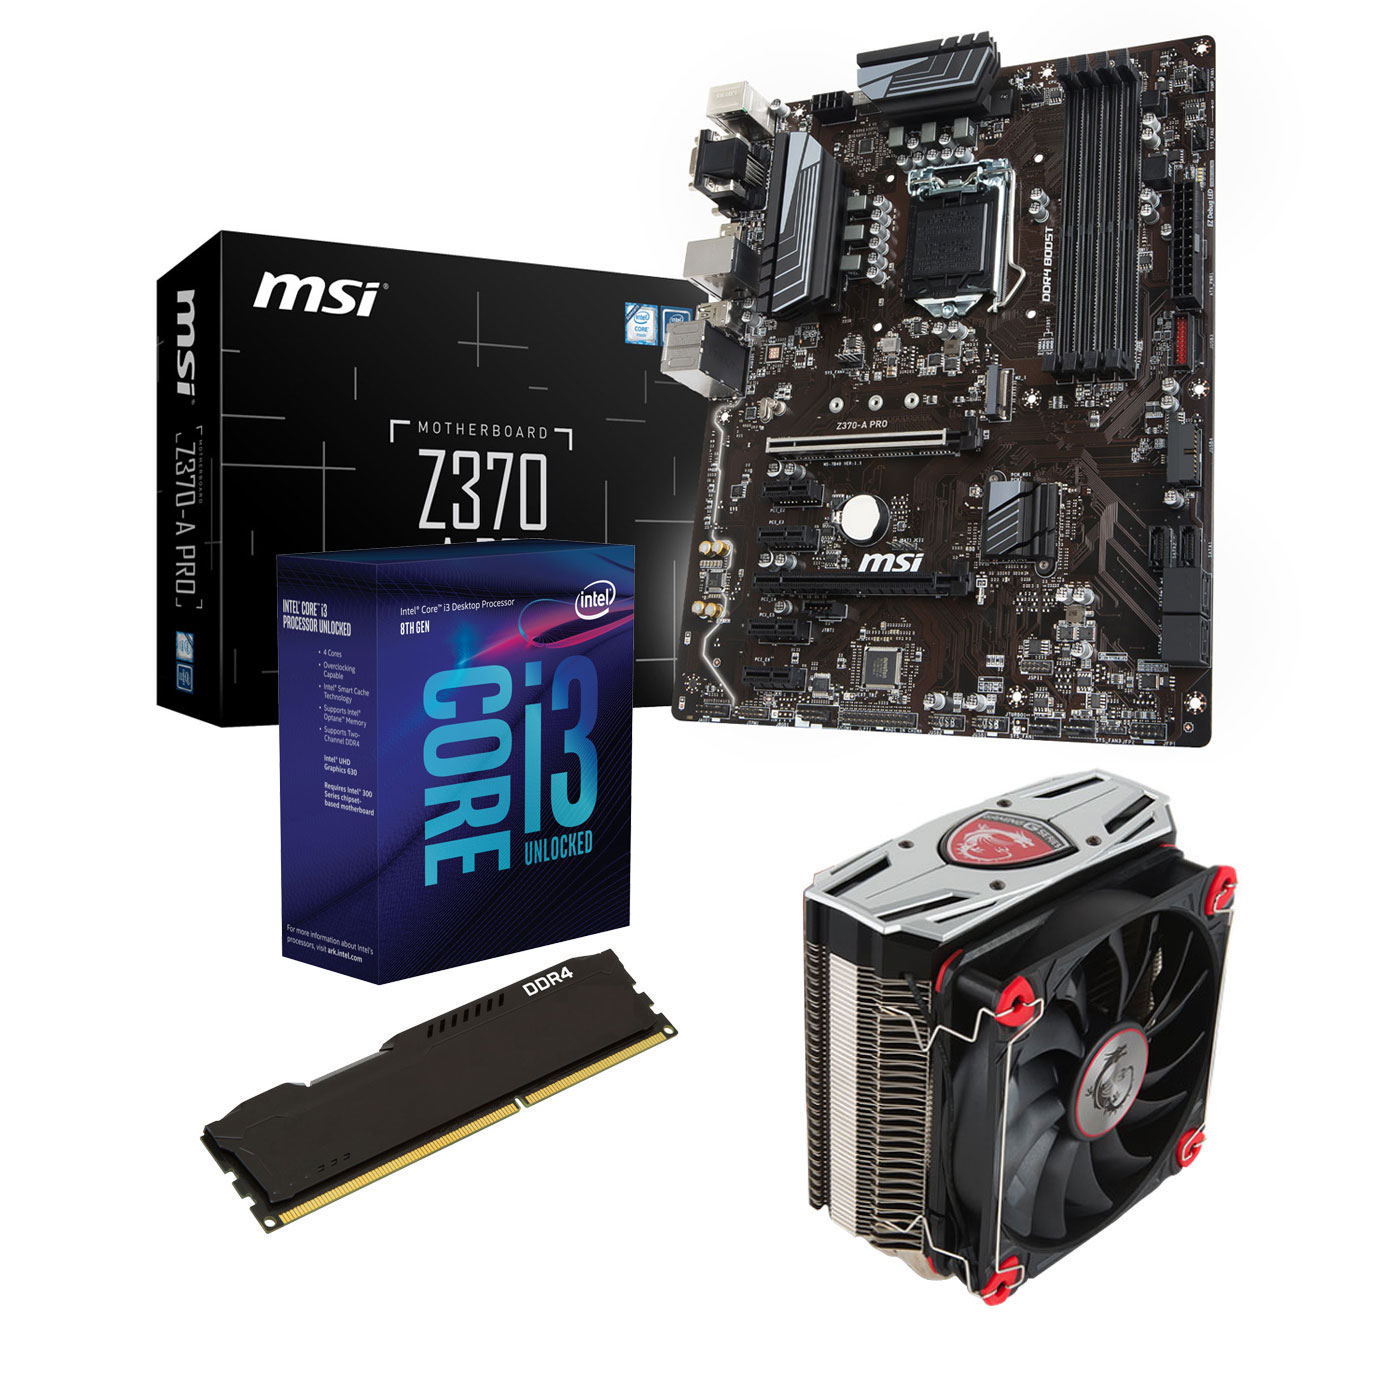 Kit upgrade PC Kit Upgrade PC Core i3K MSI Z370-A PRO 4 Go Carte mère Socket 1151 Intel Z370 Express + CPU Intel Core i3-8350K (4.0 GHz) + RAM 4 Go DDR4